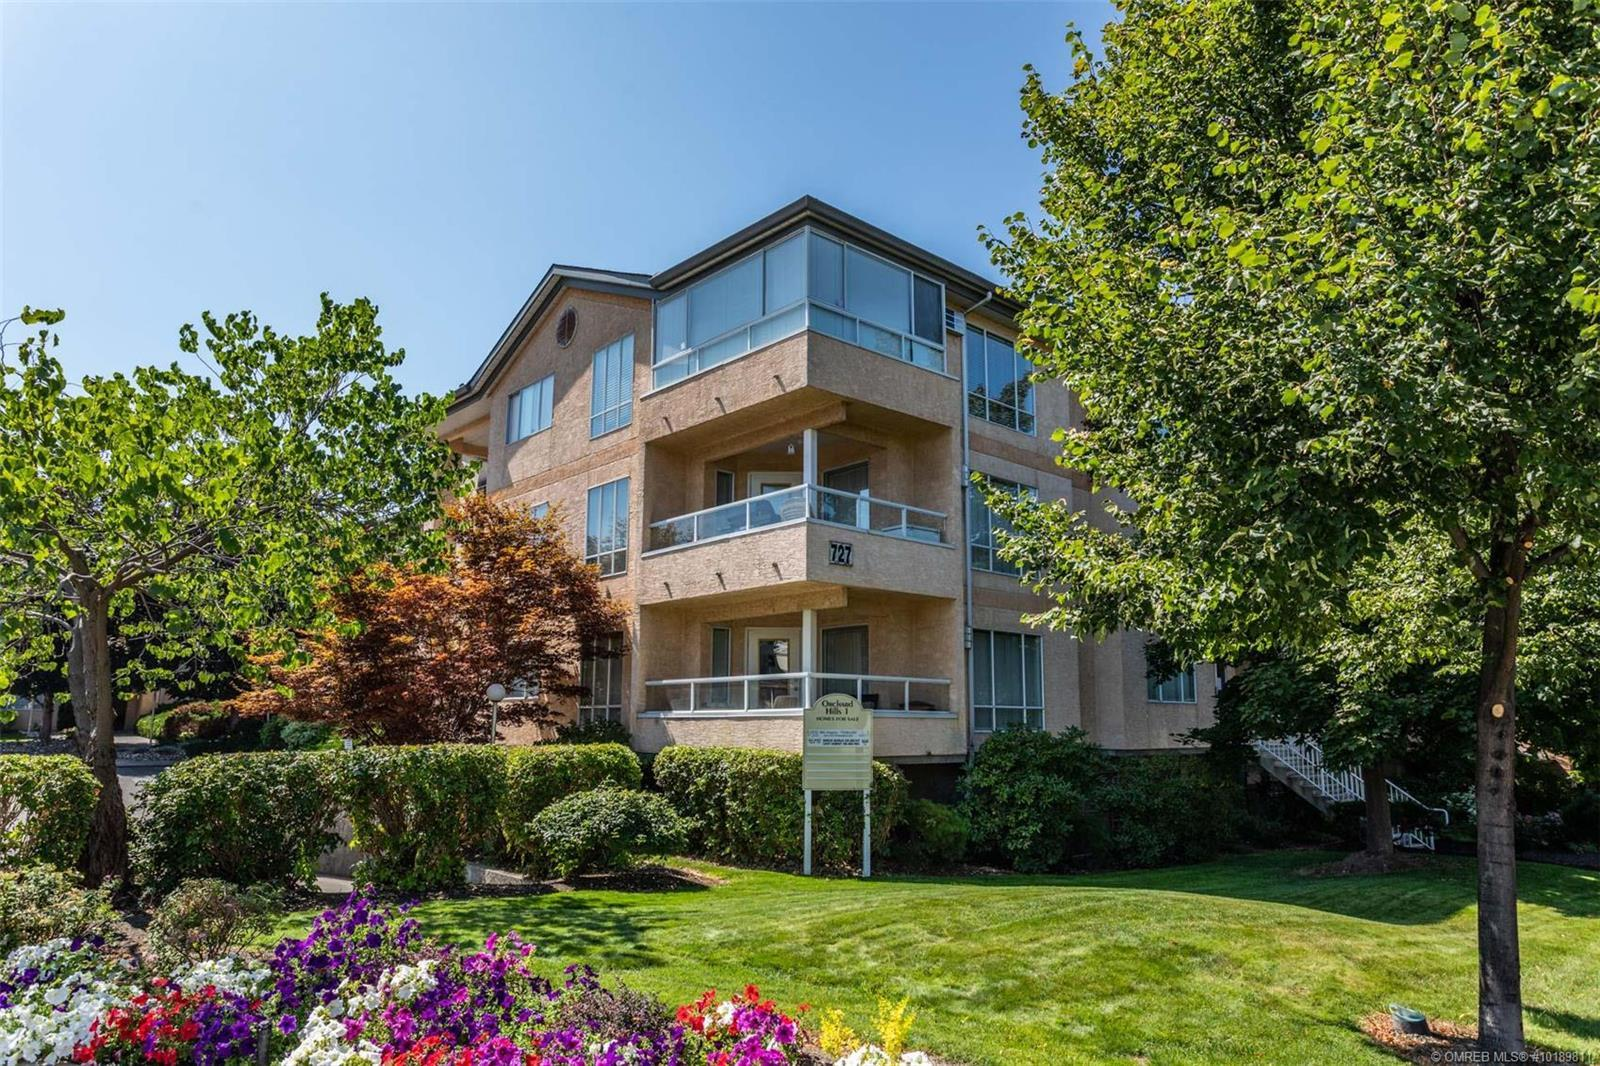 Removed: 315 - 727 Houghton Road, Kelowna, BC - Removed on 2019-09-17 14:27:09